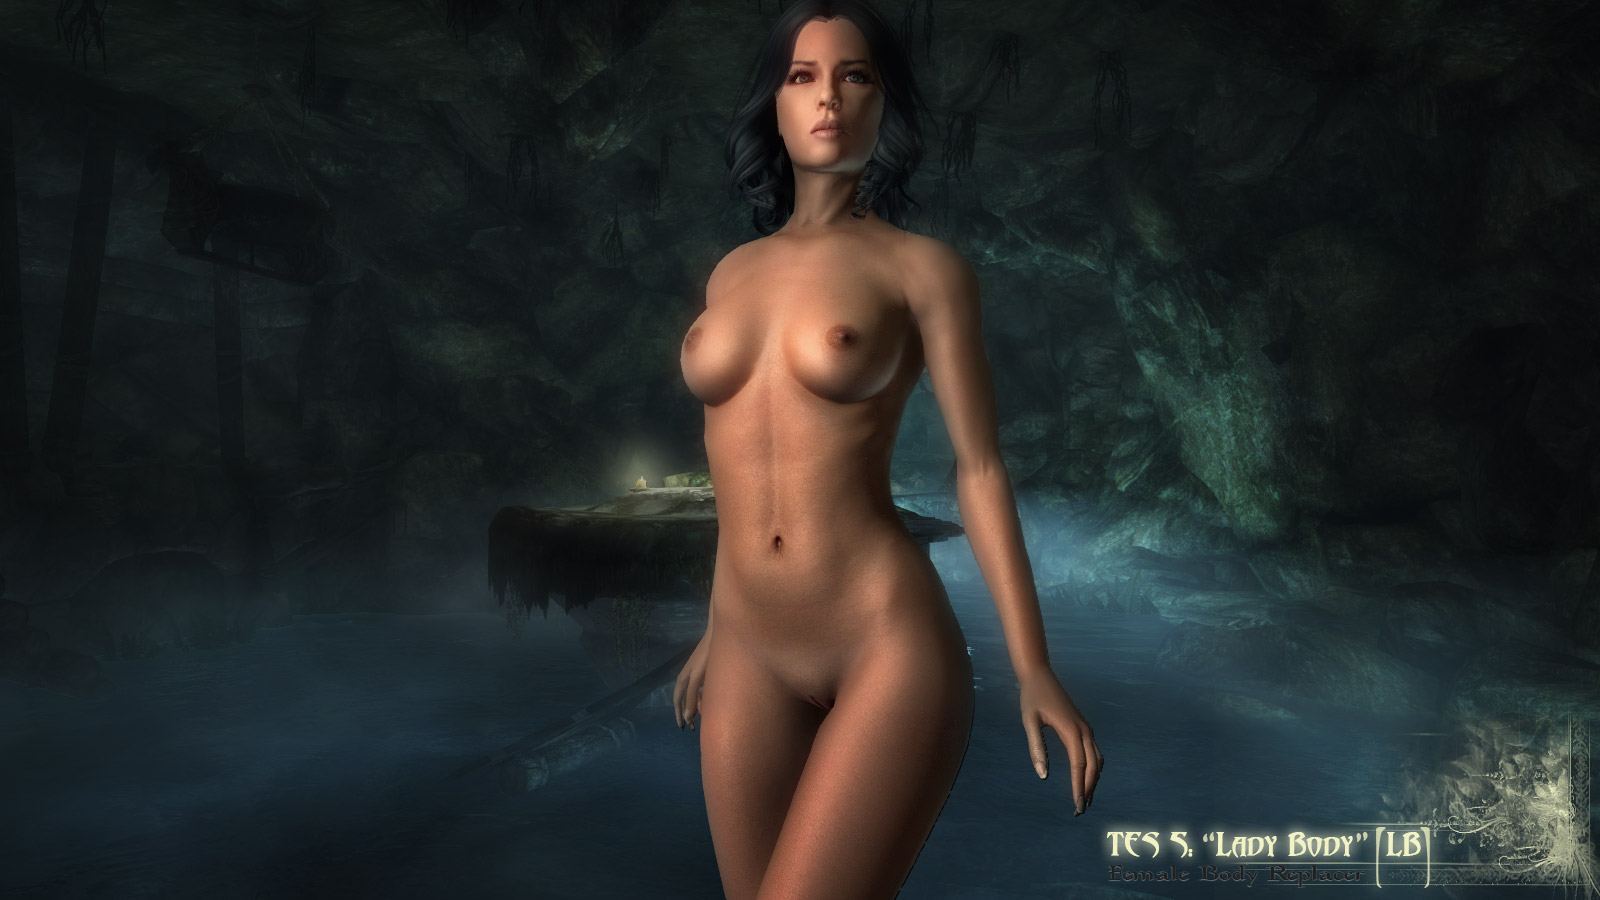 Skyrim nude mod nudemod net exposed picture